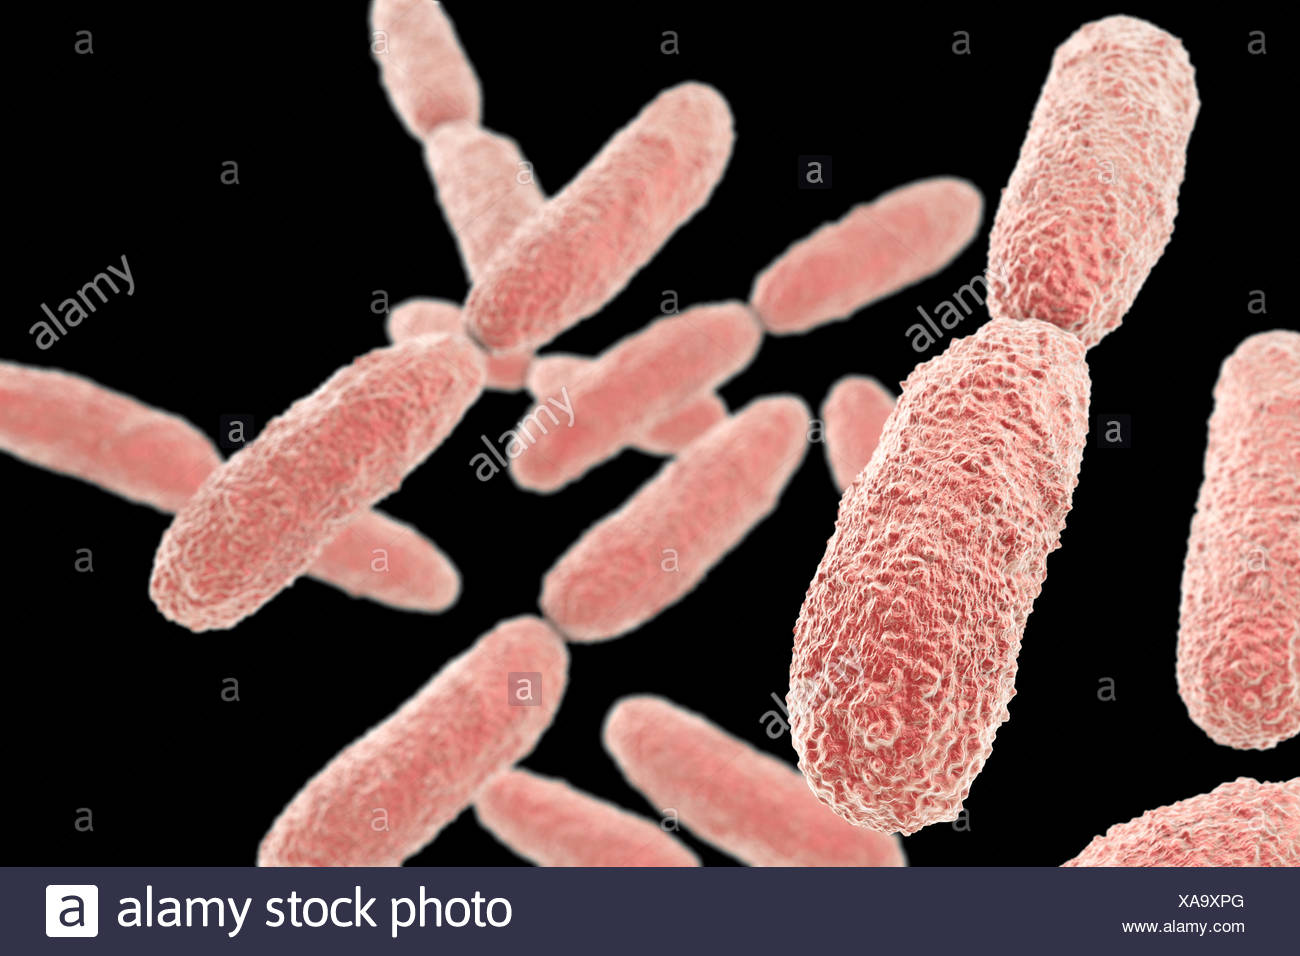 Klebsiella pneumoniae bacteria,computer illustration.K.pneumoniae are Gram-negative,encapsulated,non-motile,enteric,rod-shaped bacteria.This species causes Friedlander's pneumonia urinary tract infections.K.pneumoniae pathogenicity can be attributed to its production of heat-stable enterotoxin.This - Stock Image